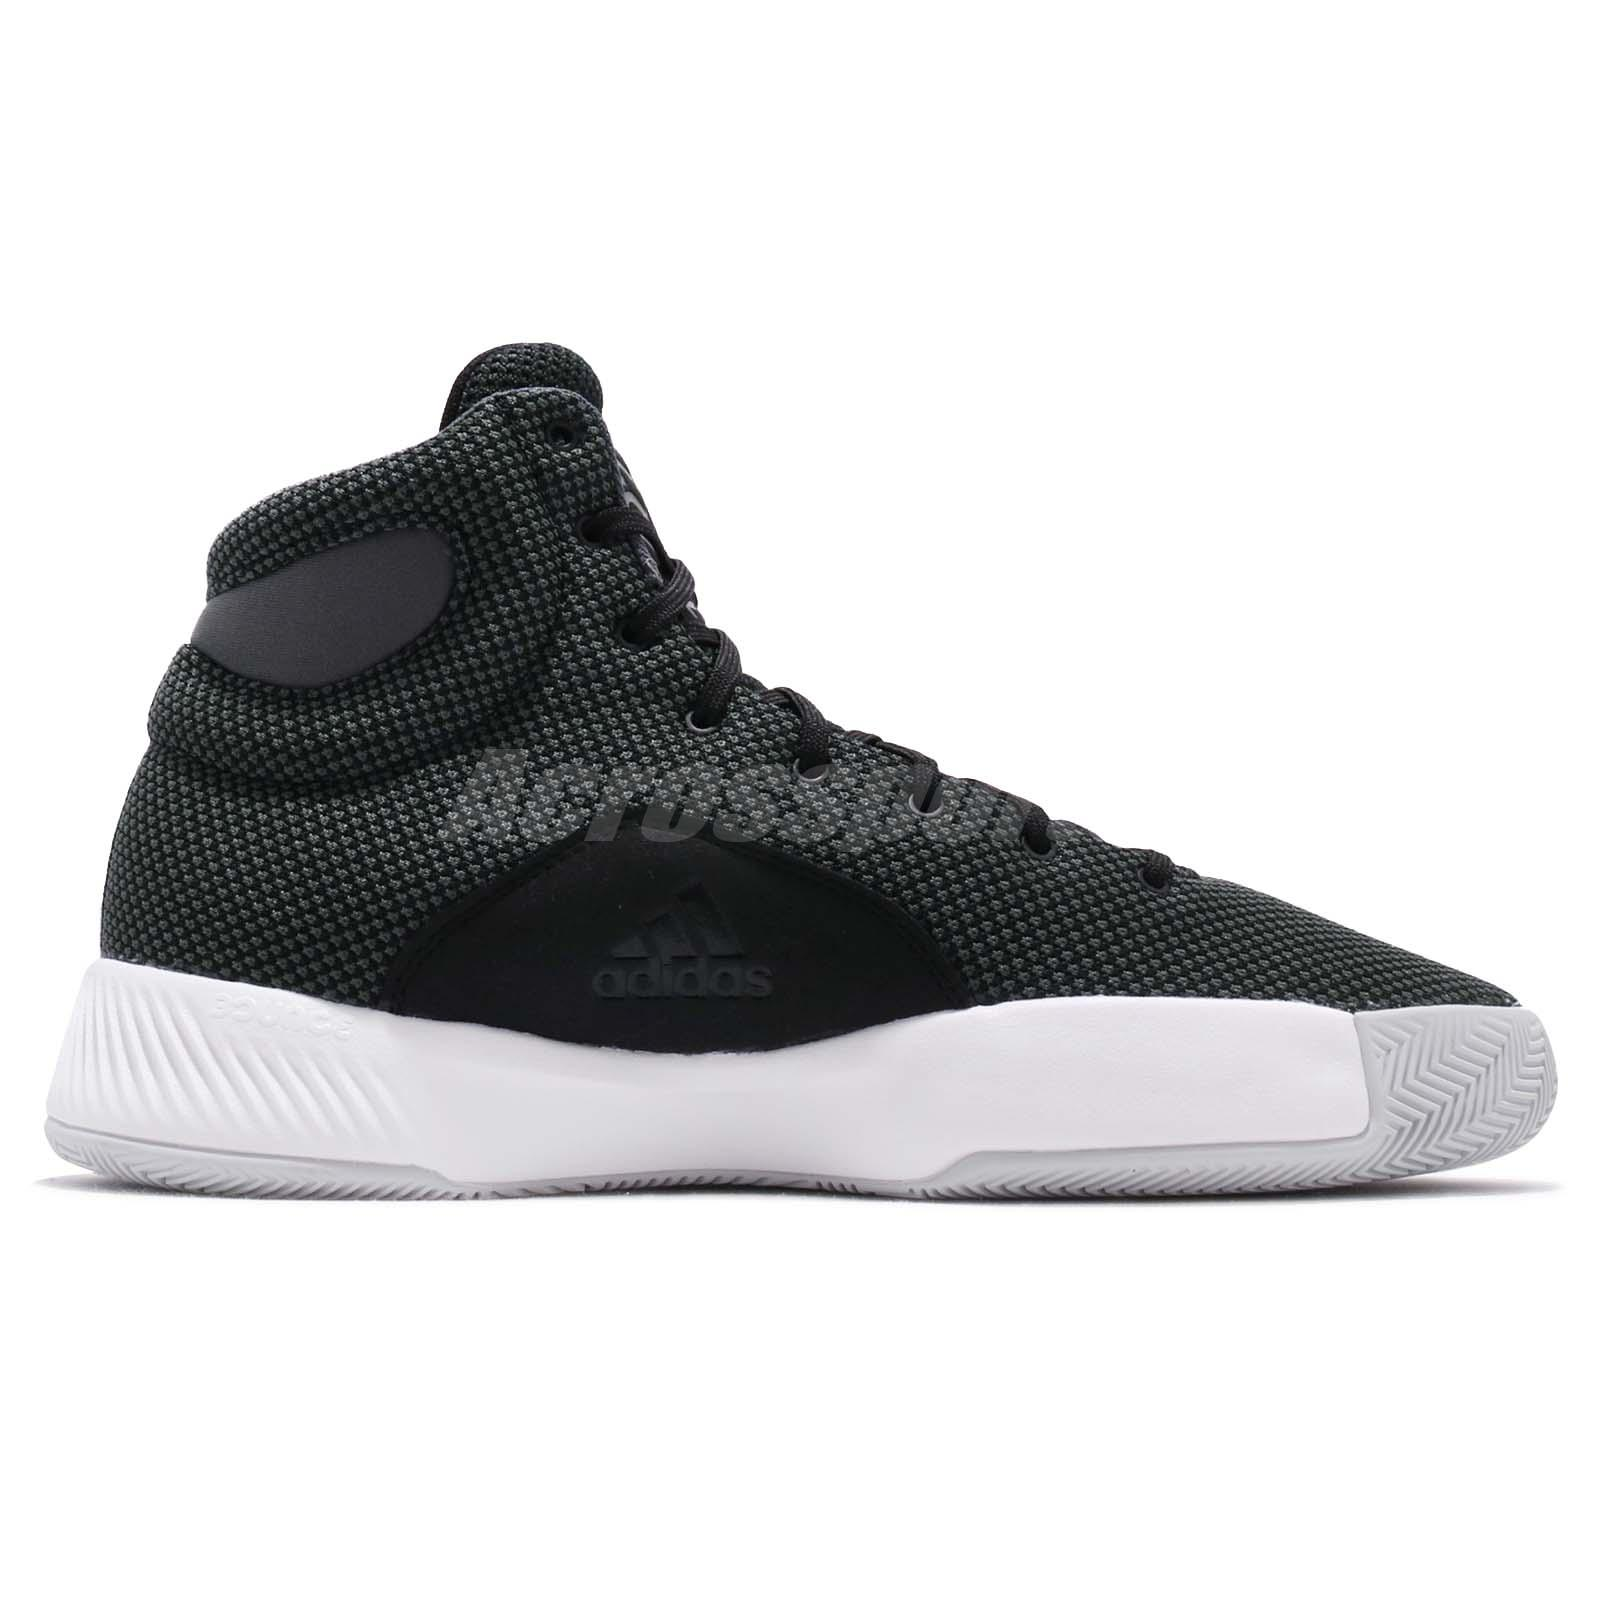 5510adba897f adidas Pro Bounce Madness 2019 Black White Grey Men Basketball Shoes ...